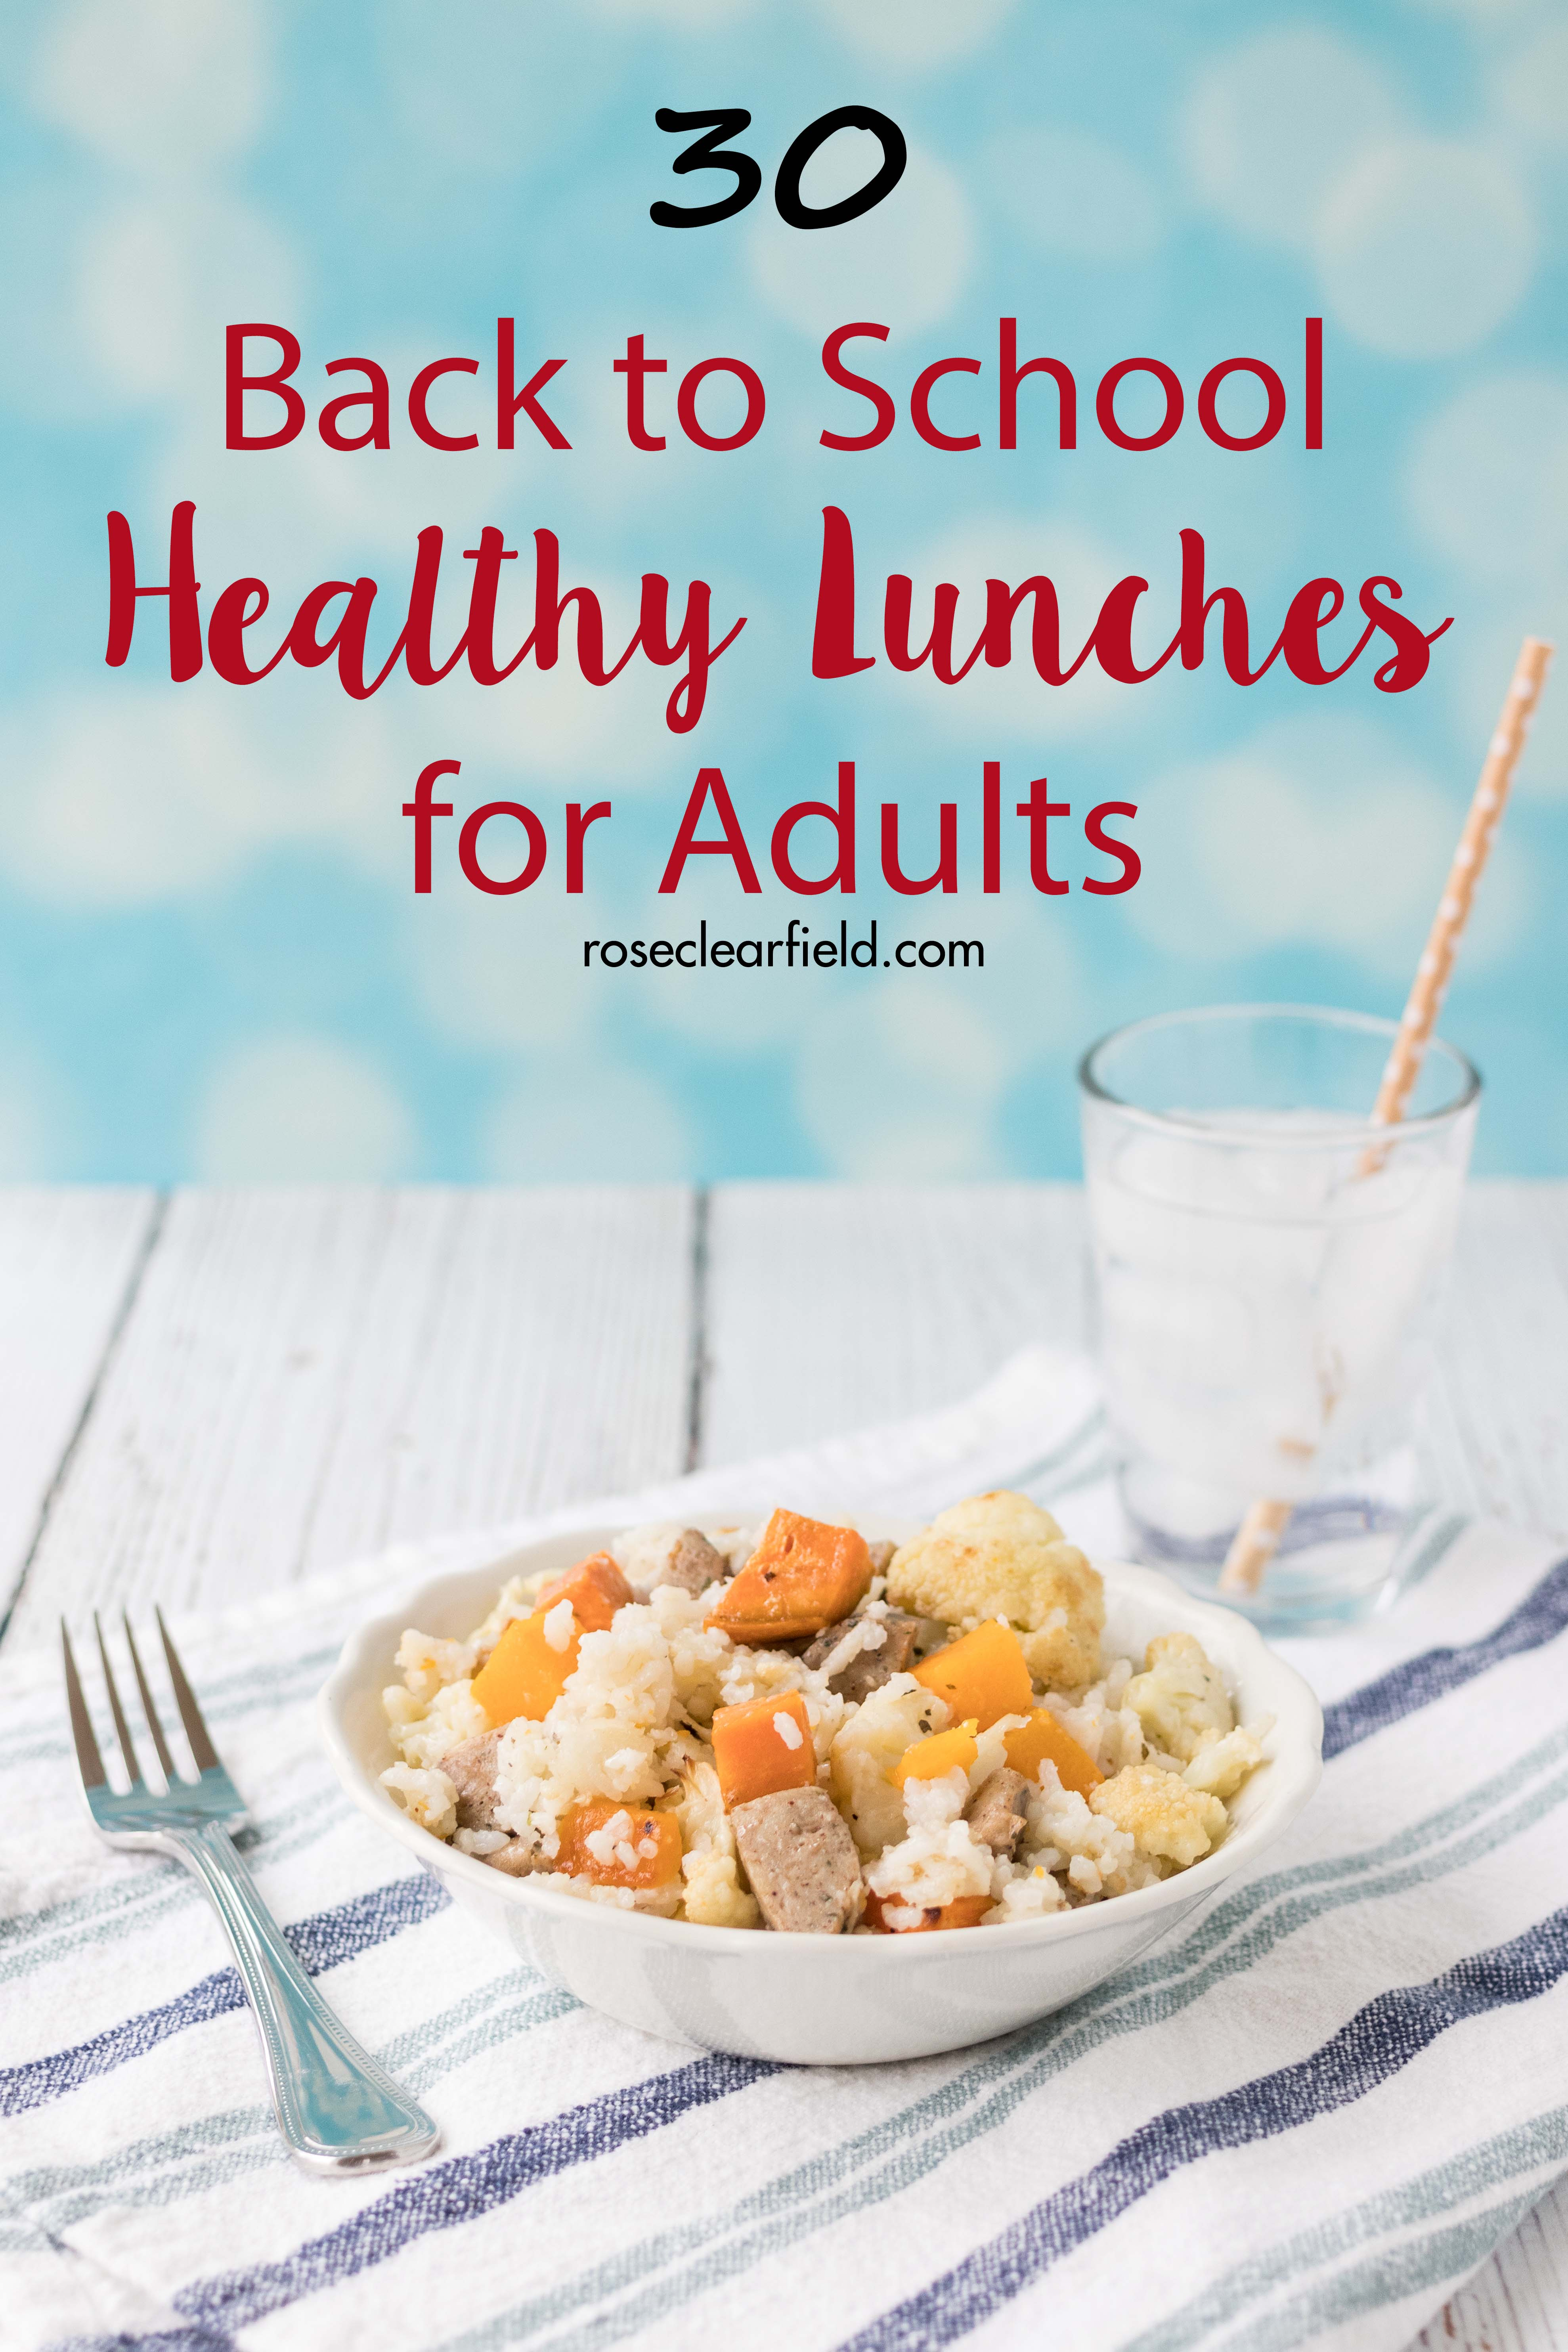 Back to School Healthy Lunches for Adults   https://www.roseclearfield.com